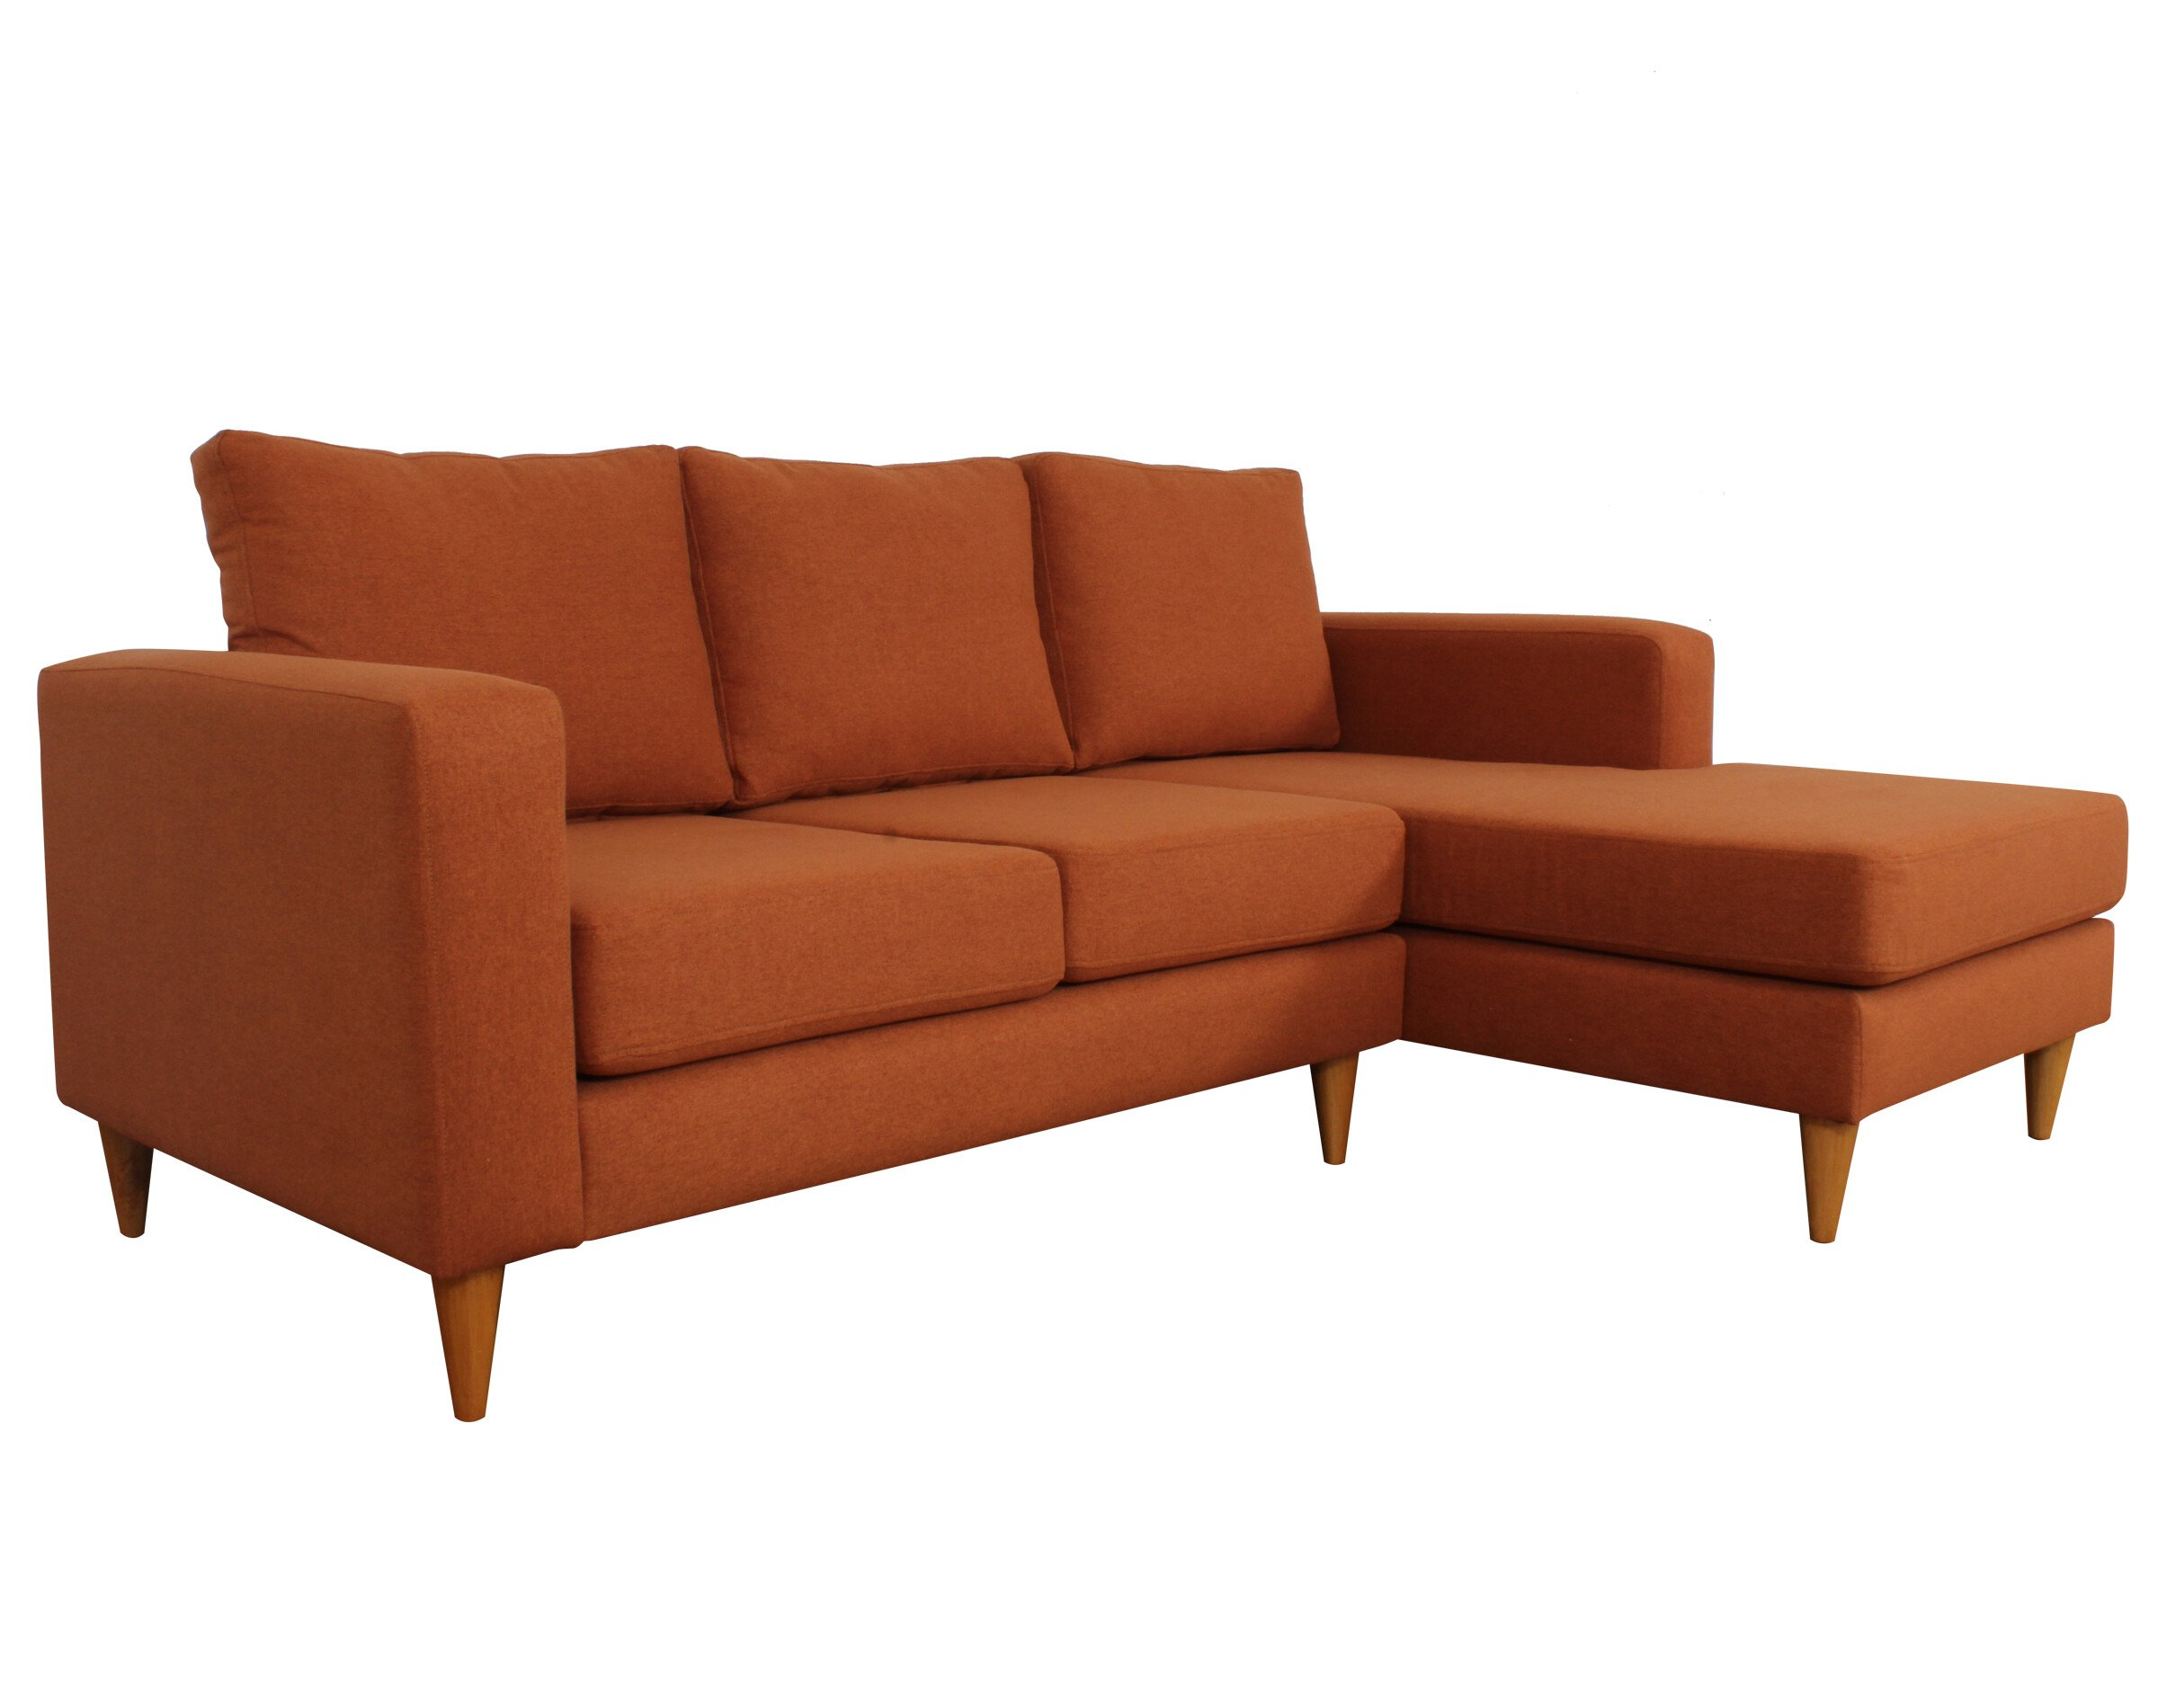 Seccional Tai Chenille Soft Orange 2